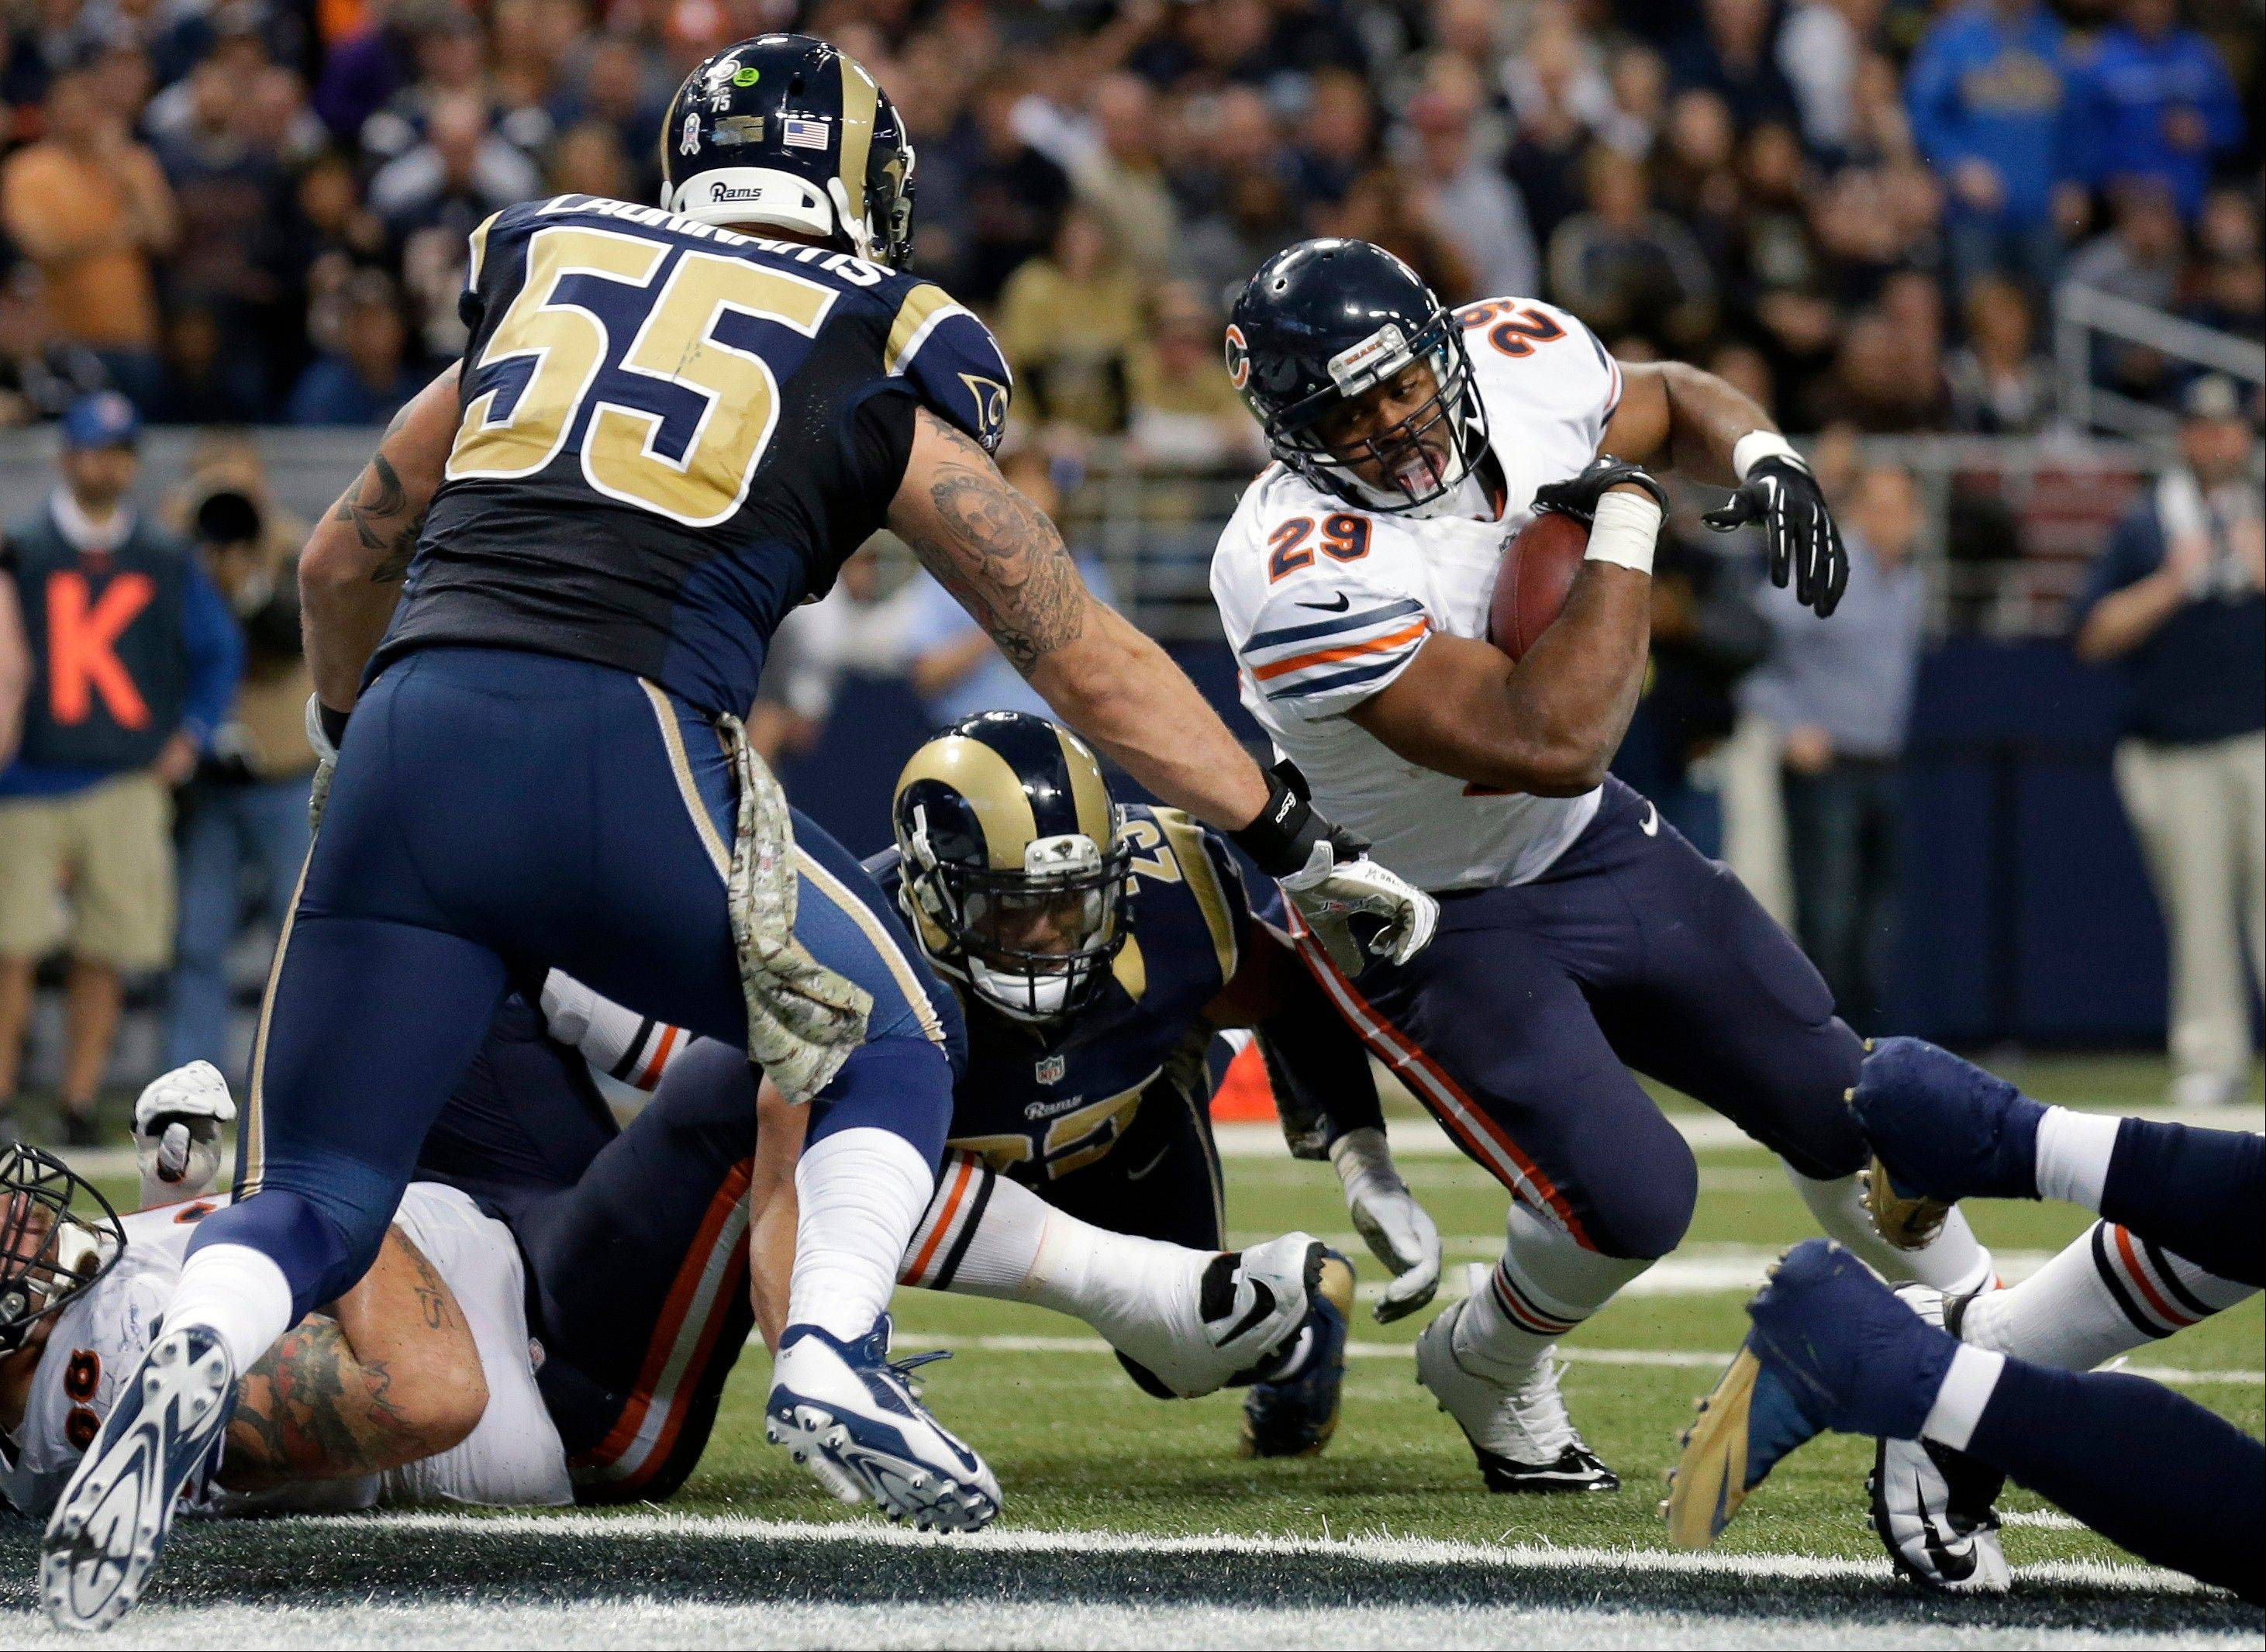 Chicago Bears running back Michael Bush, right, scores on a 1-yard run past St. Louis Rams linebacker James Laurinaitis (55) and safety T.J. McDonald during the fourth quarter.